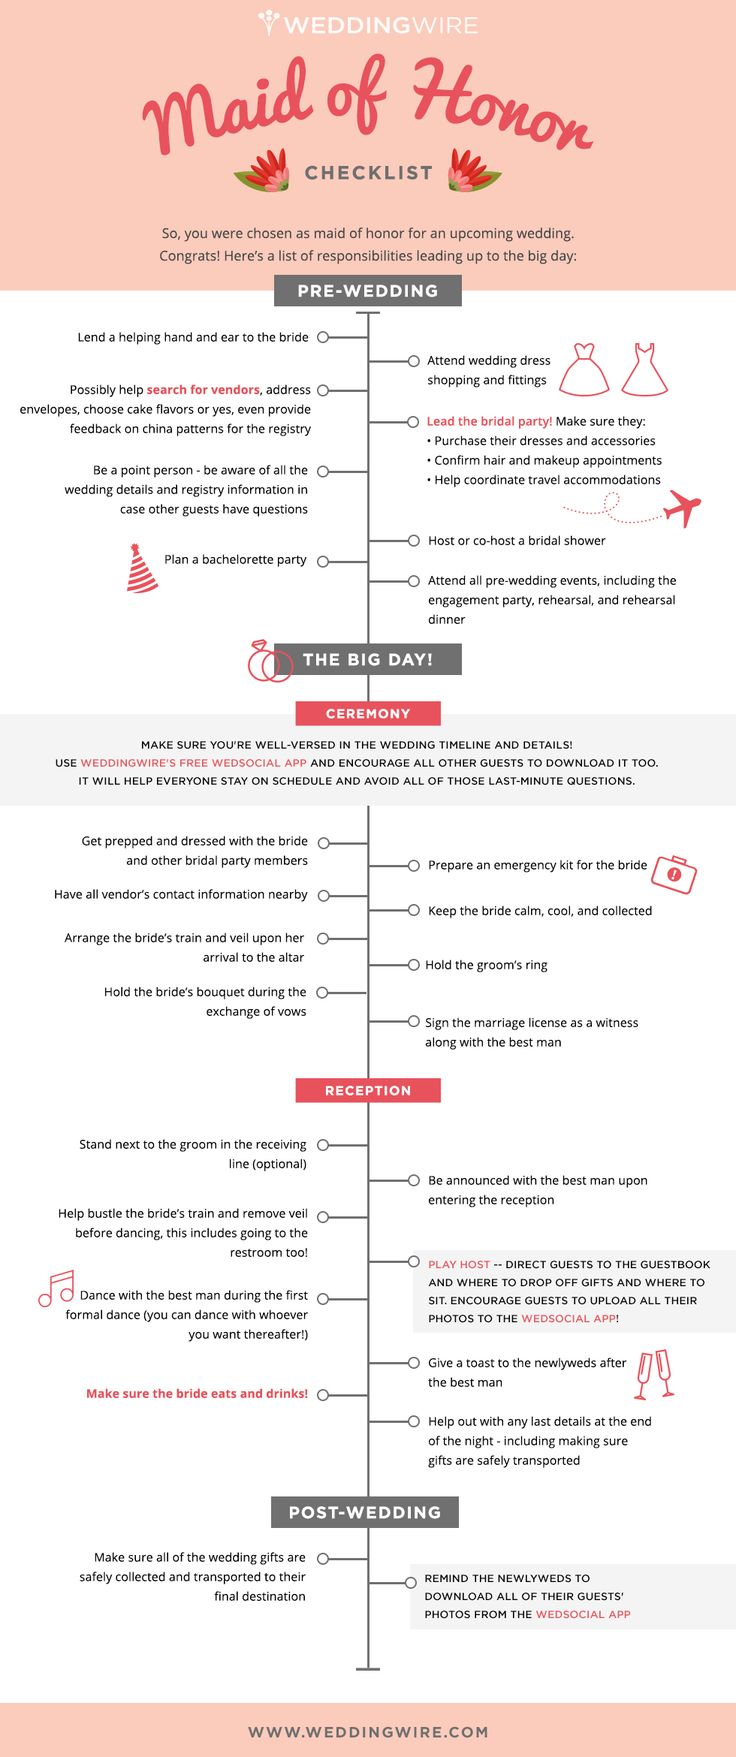 Maid of honor checklist - gonna need this soon